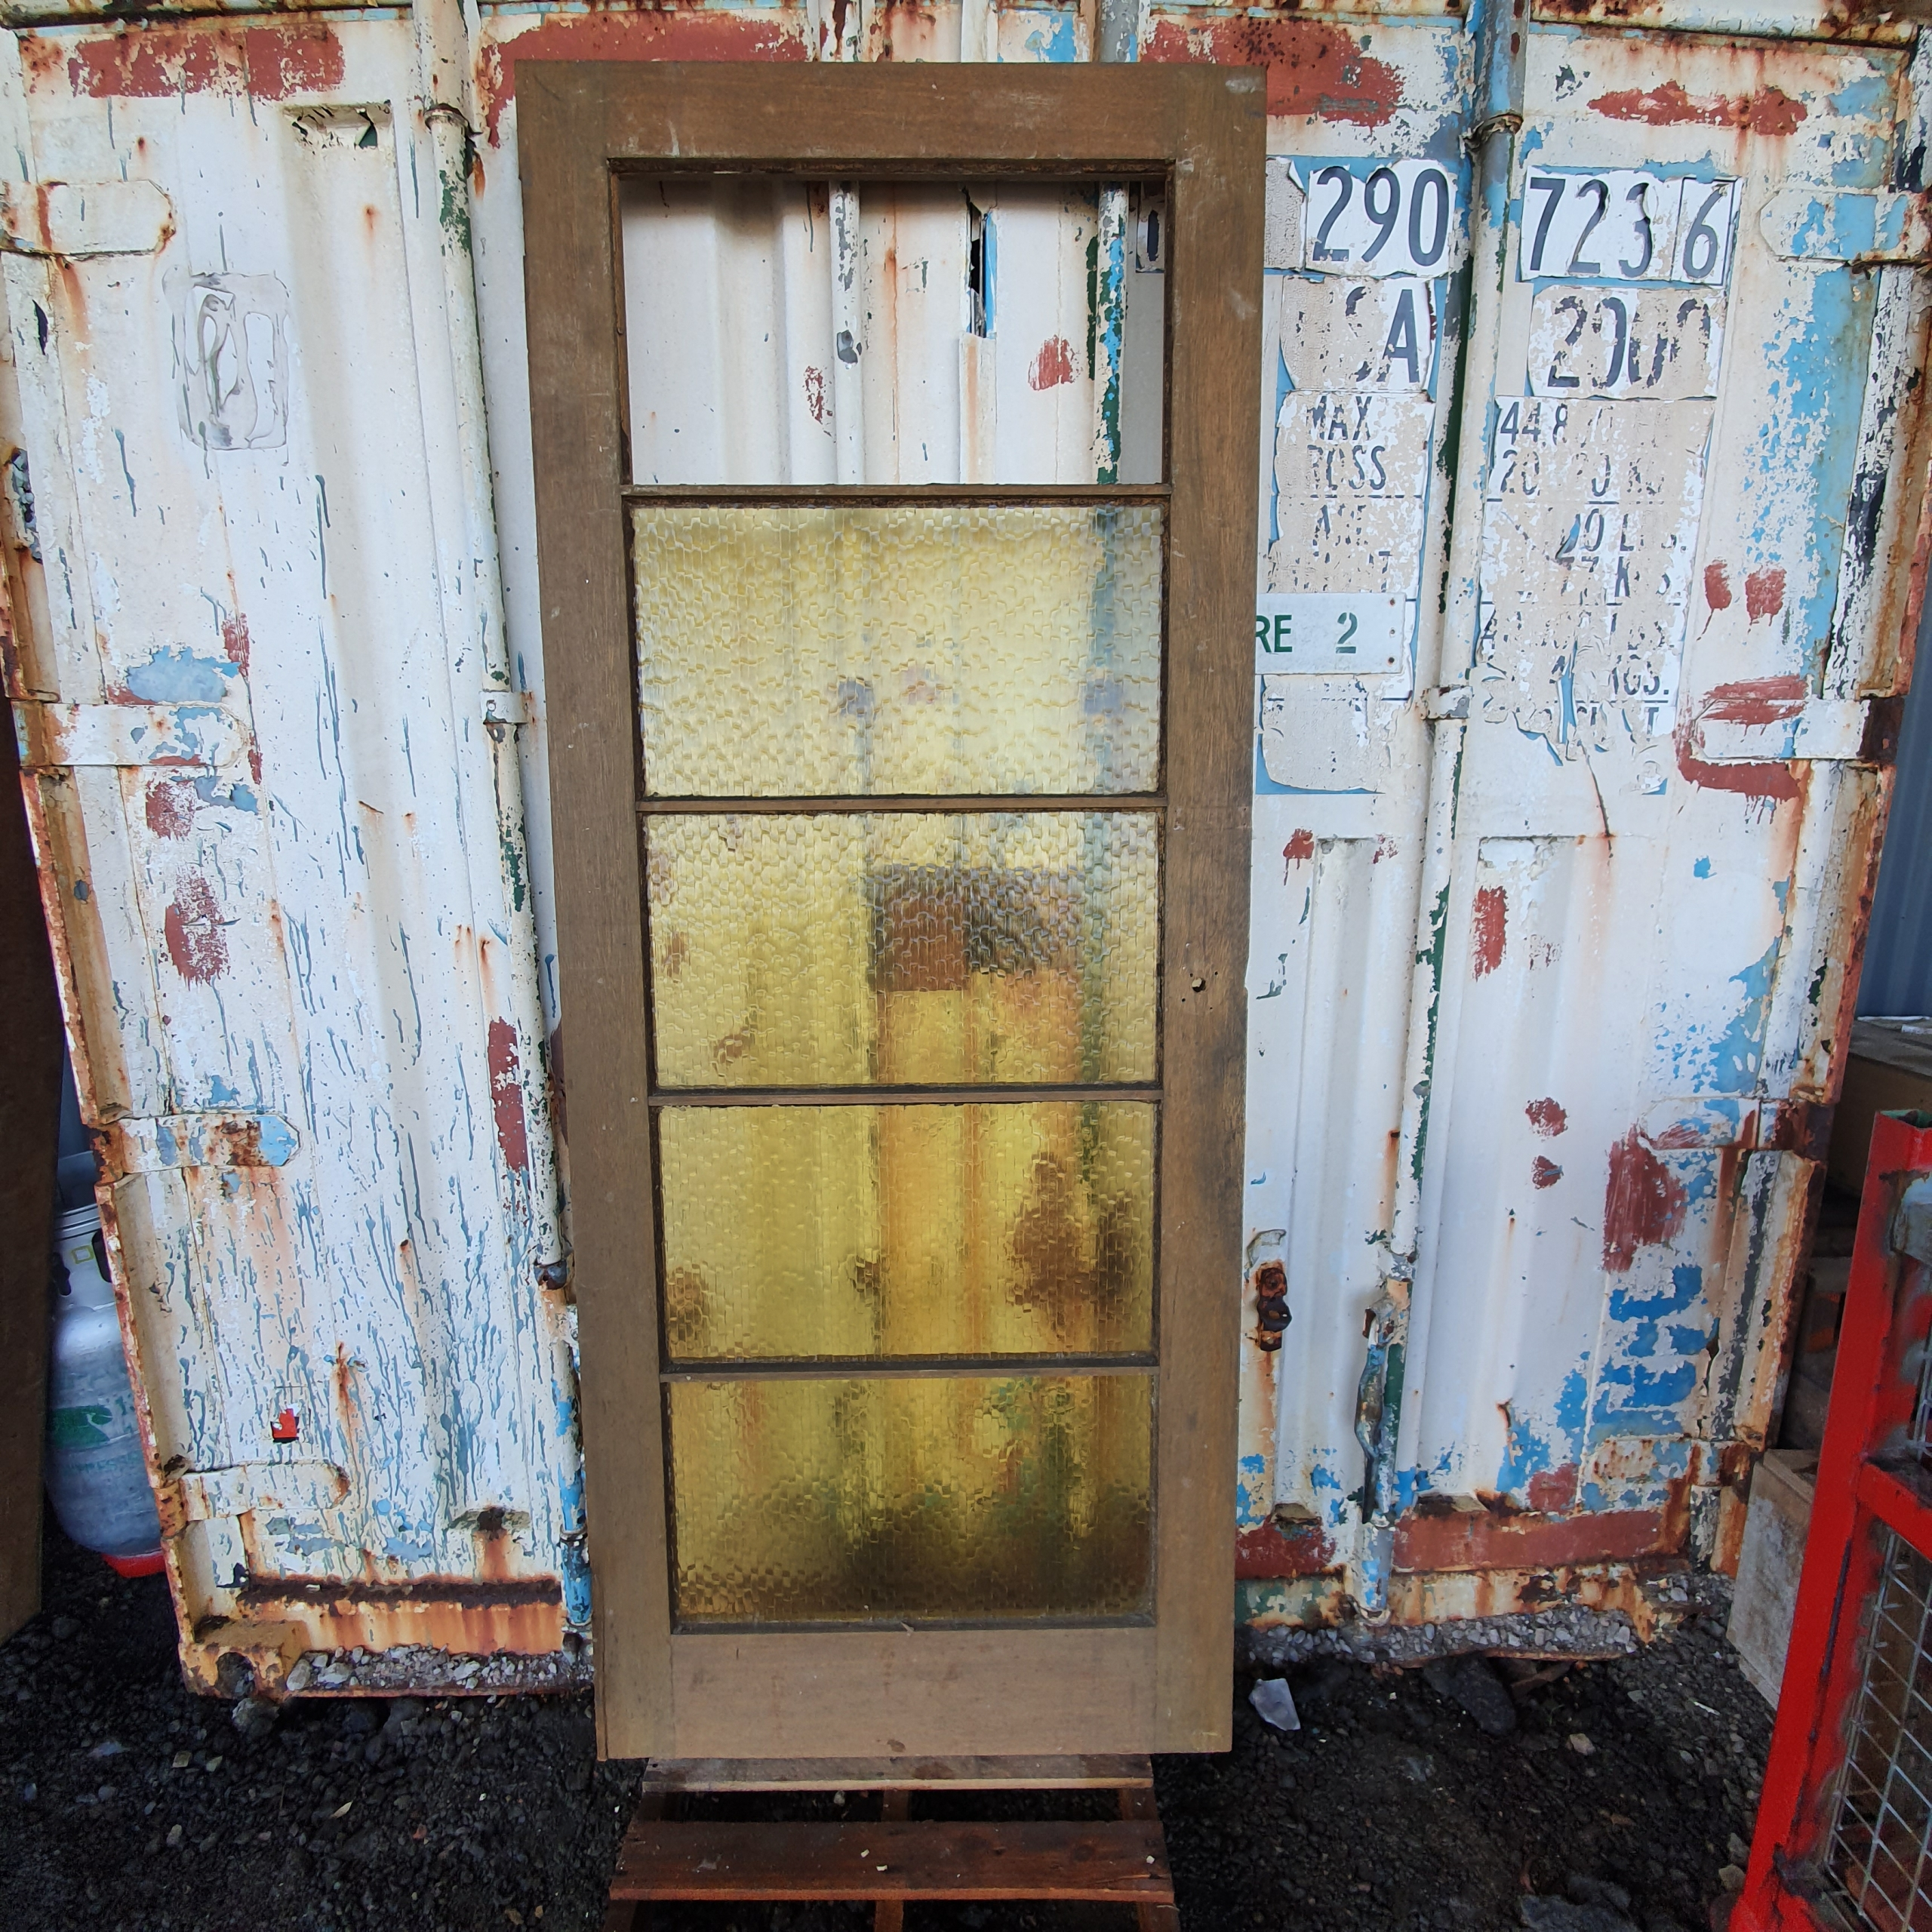 EXTERNAL DOOR W/ 5 PANEL YELLOW PATTERN GLASS ~ Top Glass Panel Missing~ Varnished Both Sides ~ 815w x 2020h  - $30.00